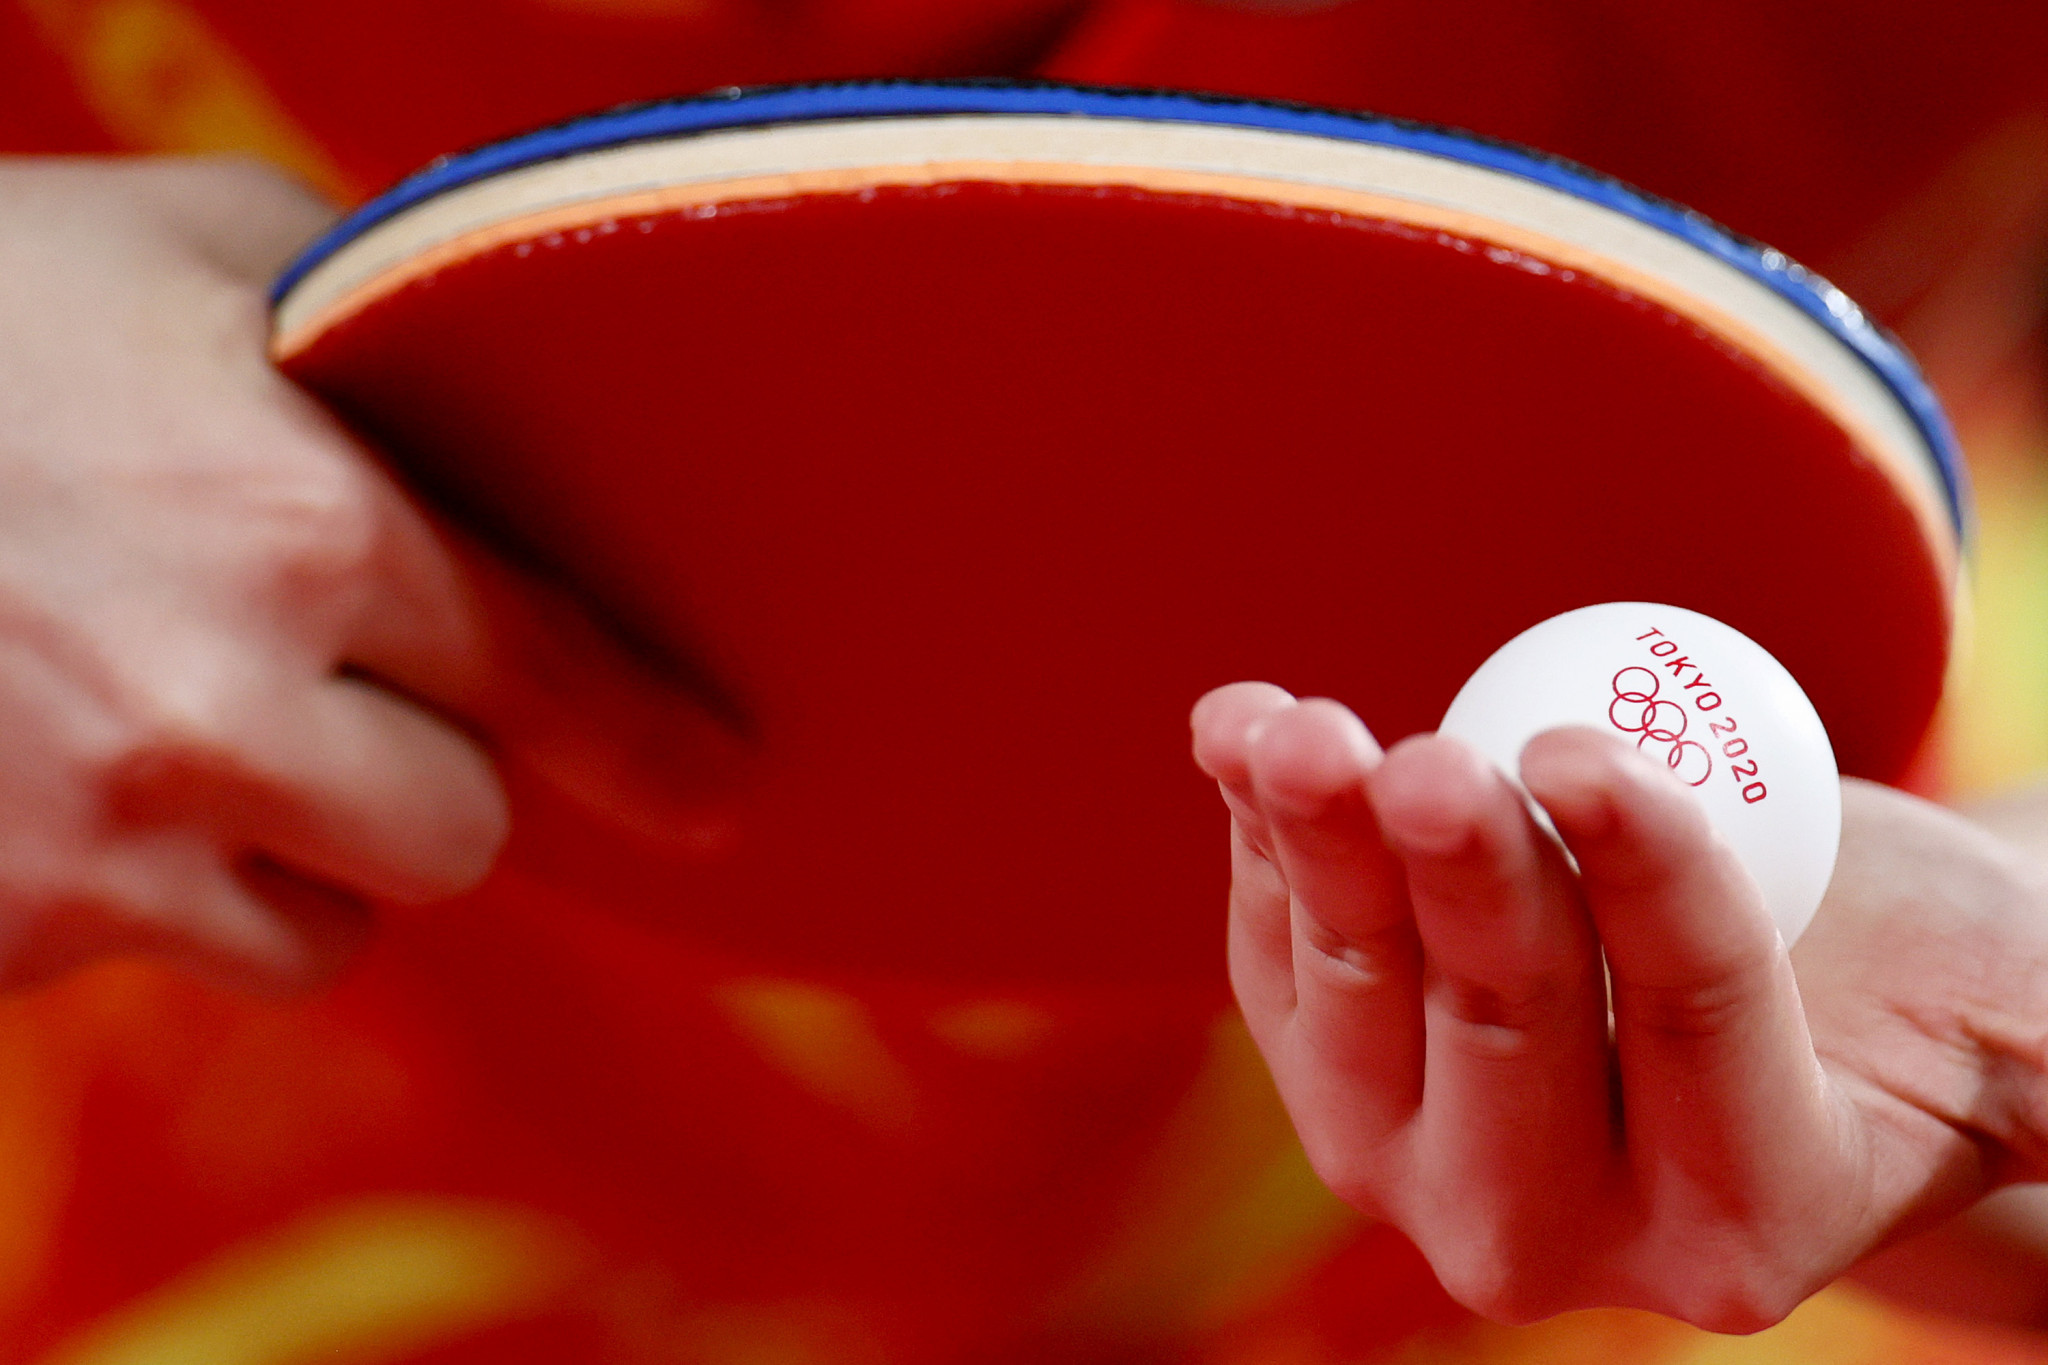 New details of ITTF partnership with TMS International emerge as governing body reports $737,000 loss for COVID-impacted 2020